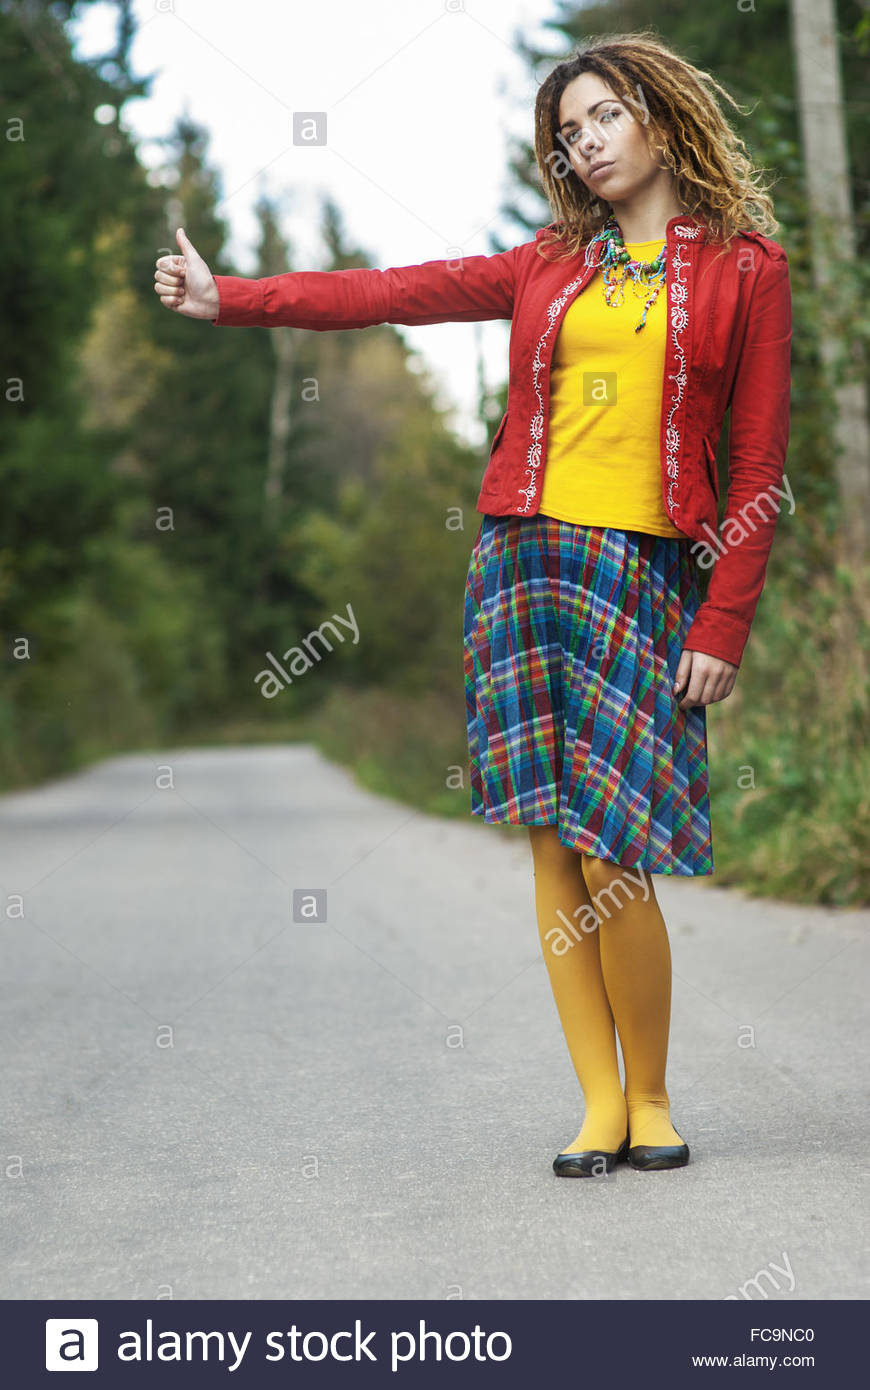 woman with dreadlocks votes hitchhiking - Stock Image